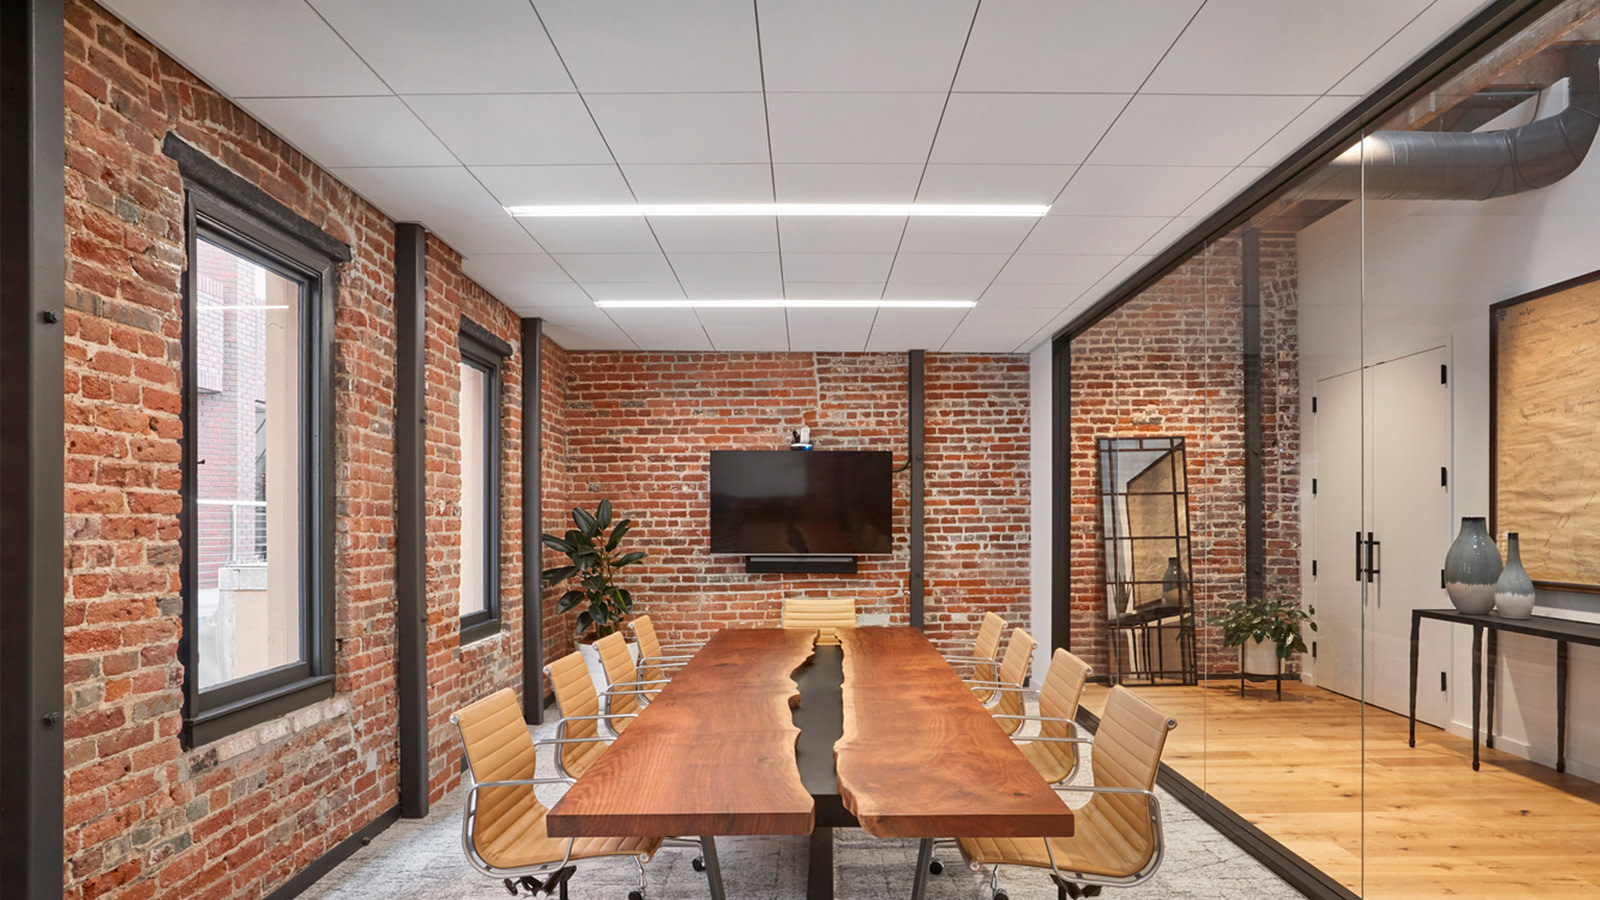 A conference room in the 01 Advisors office space